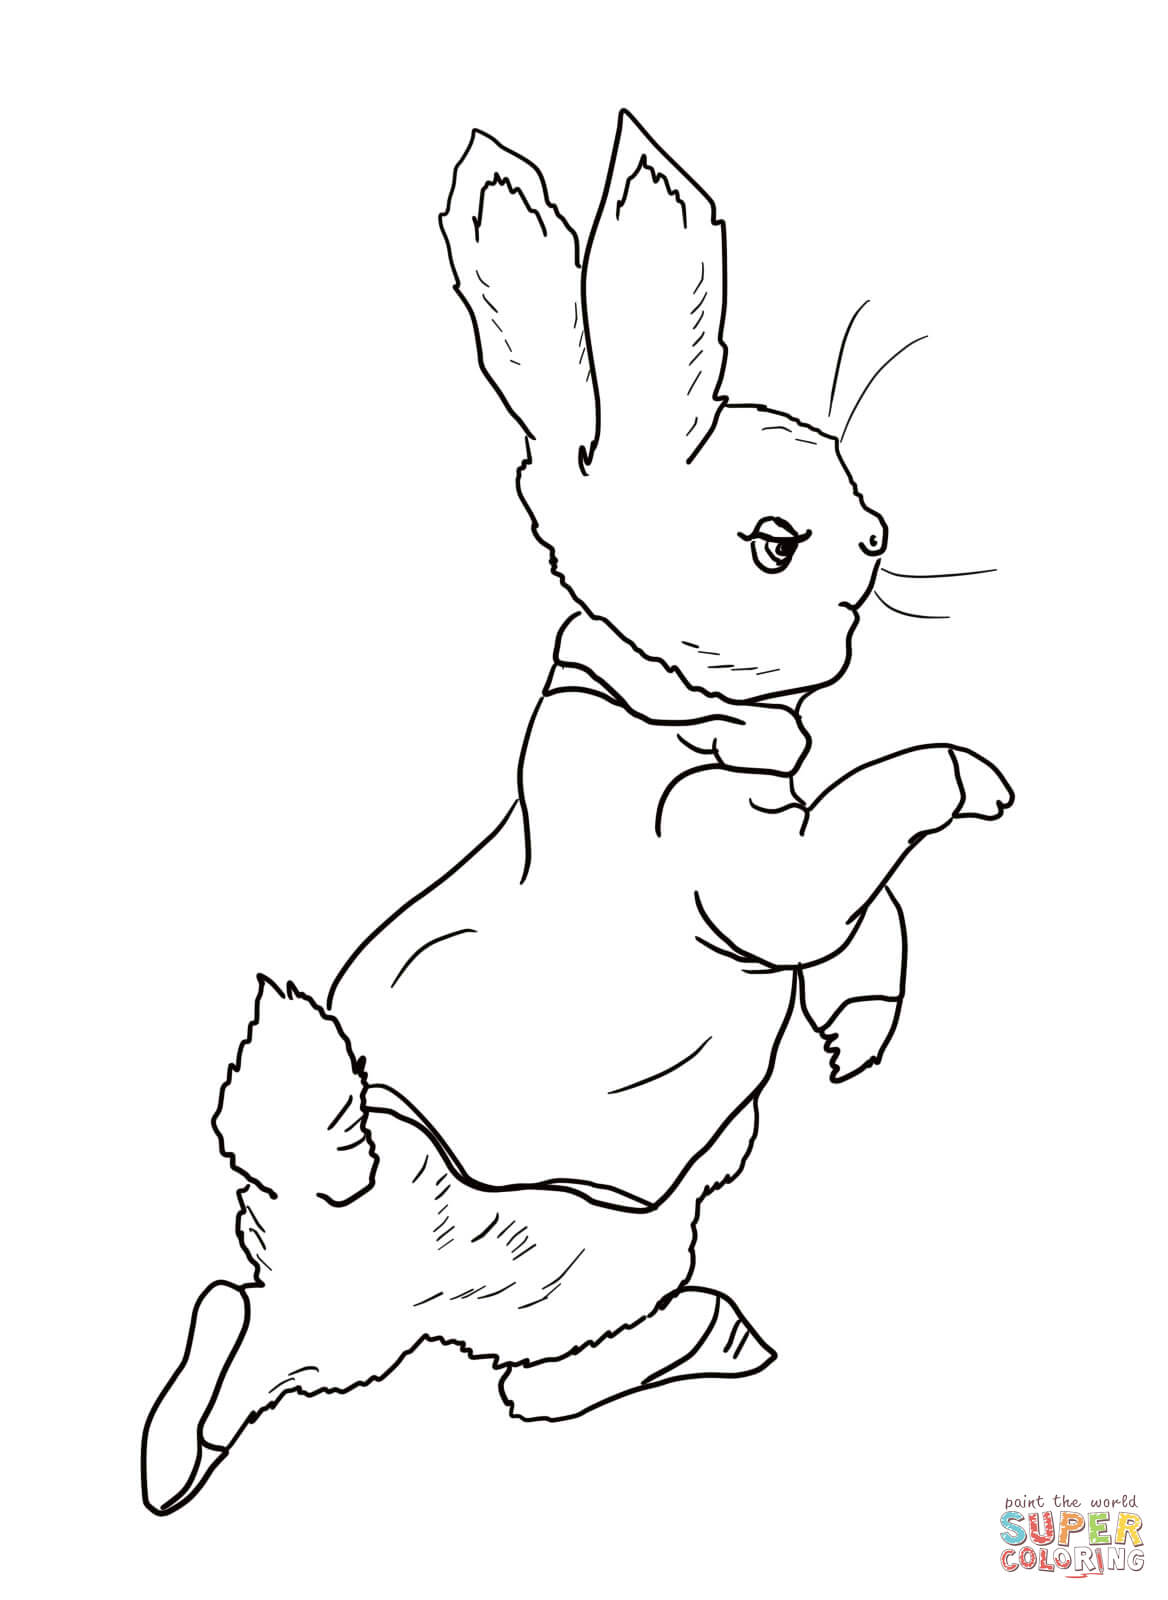 Drawn rabbit peter rabbit Coloring rabbit Rabbit pages Pages